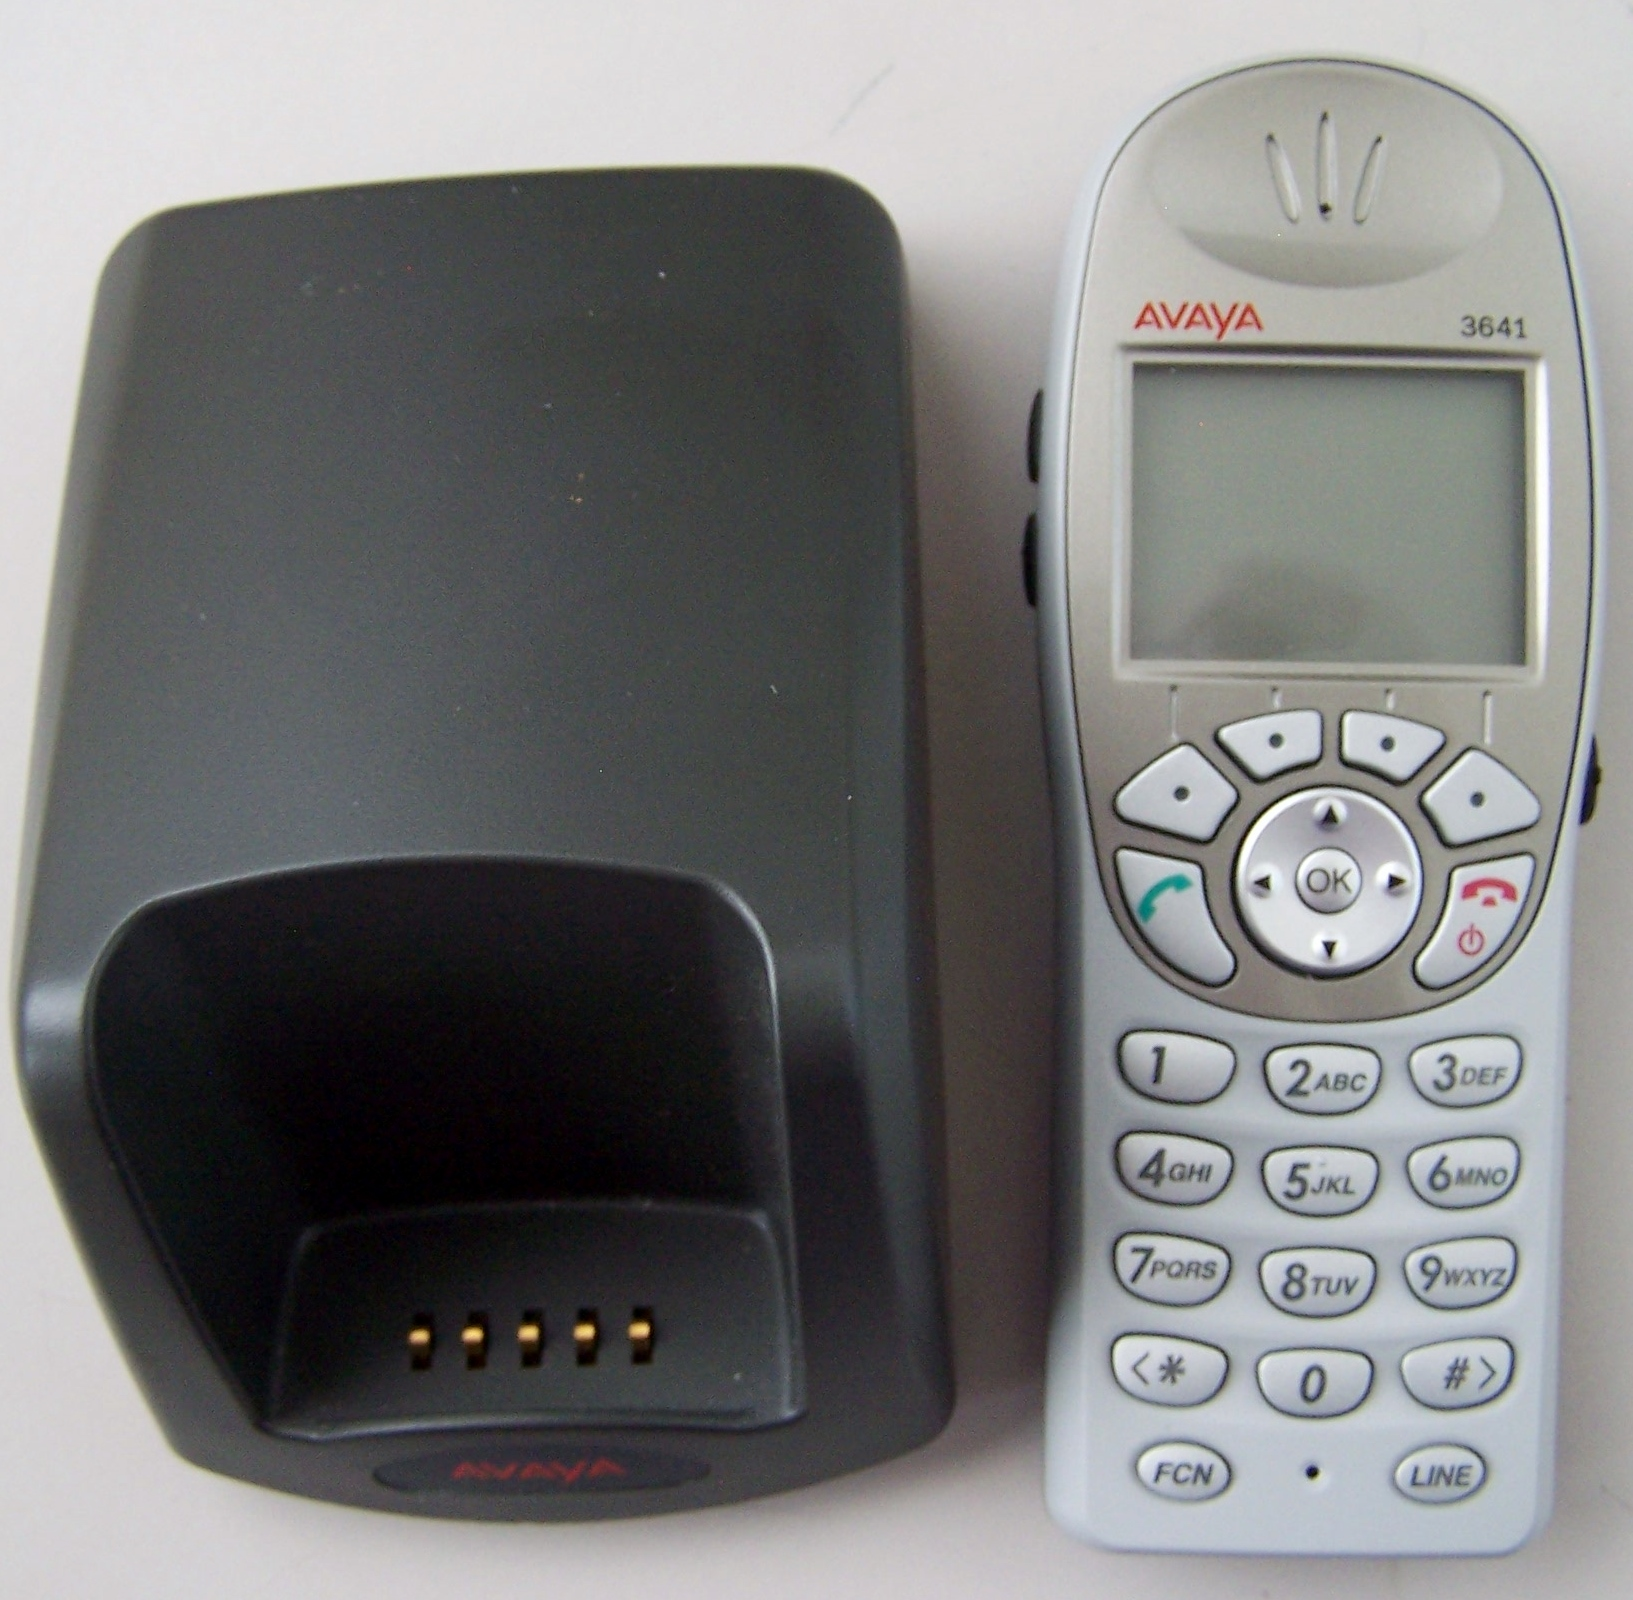 Wireless Phone 700430408 Avaya 3641 Cordless Ip Wireless Phone Nwout